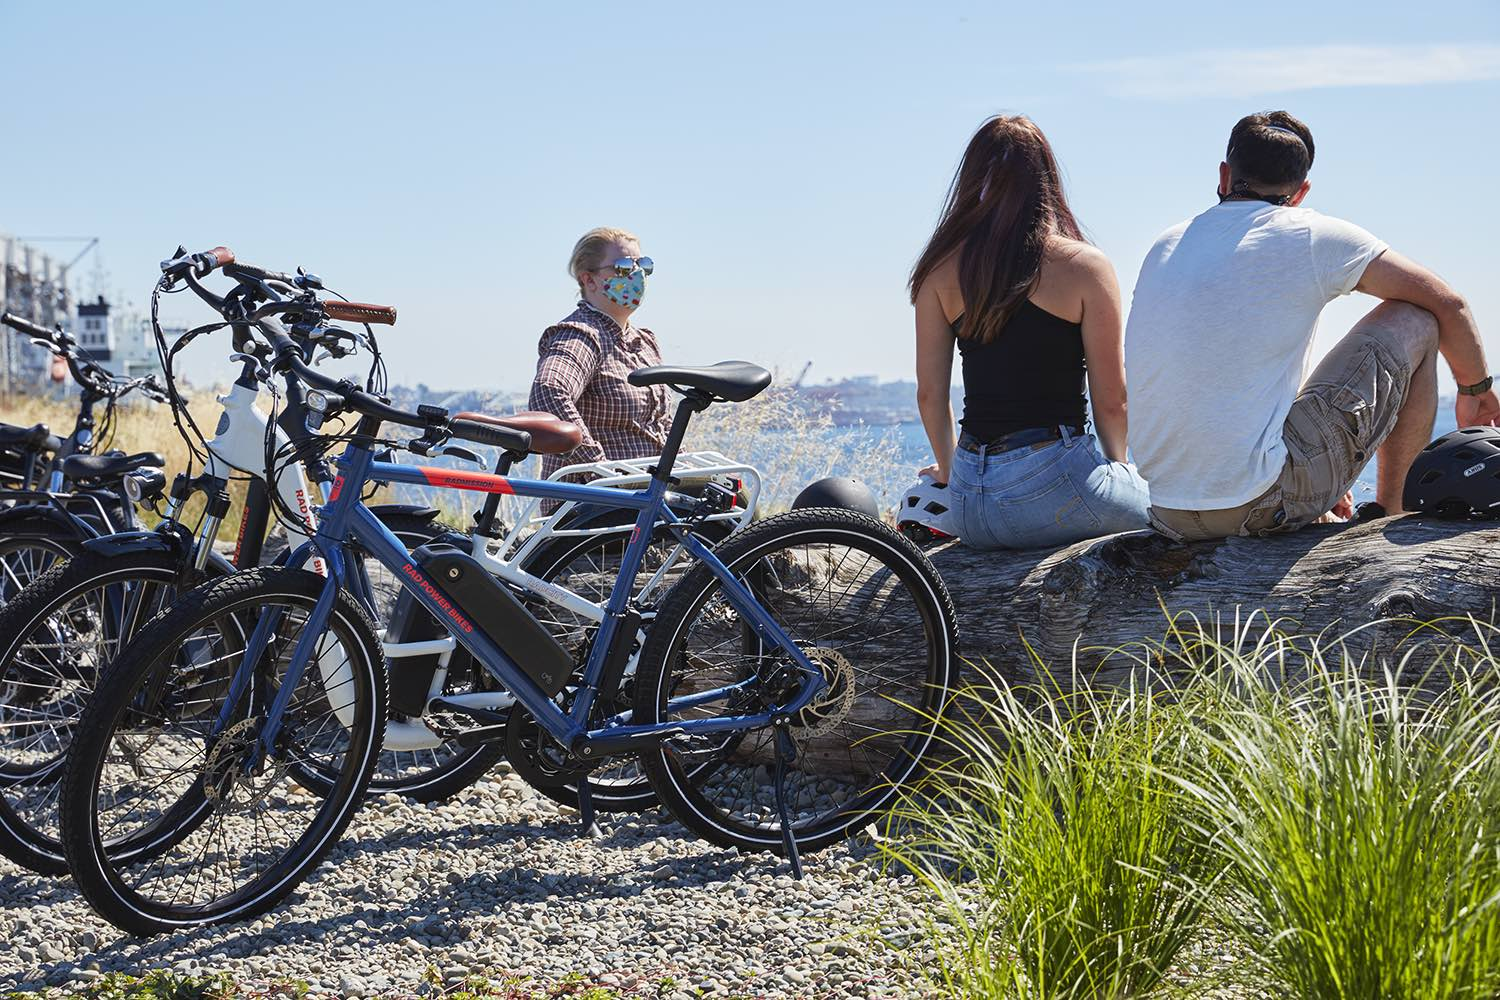 A group of friends meet along the beach, with their ebikes perched to the side.